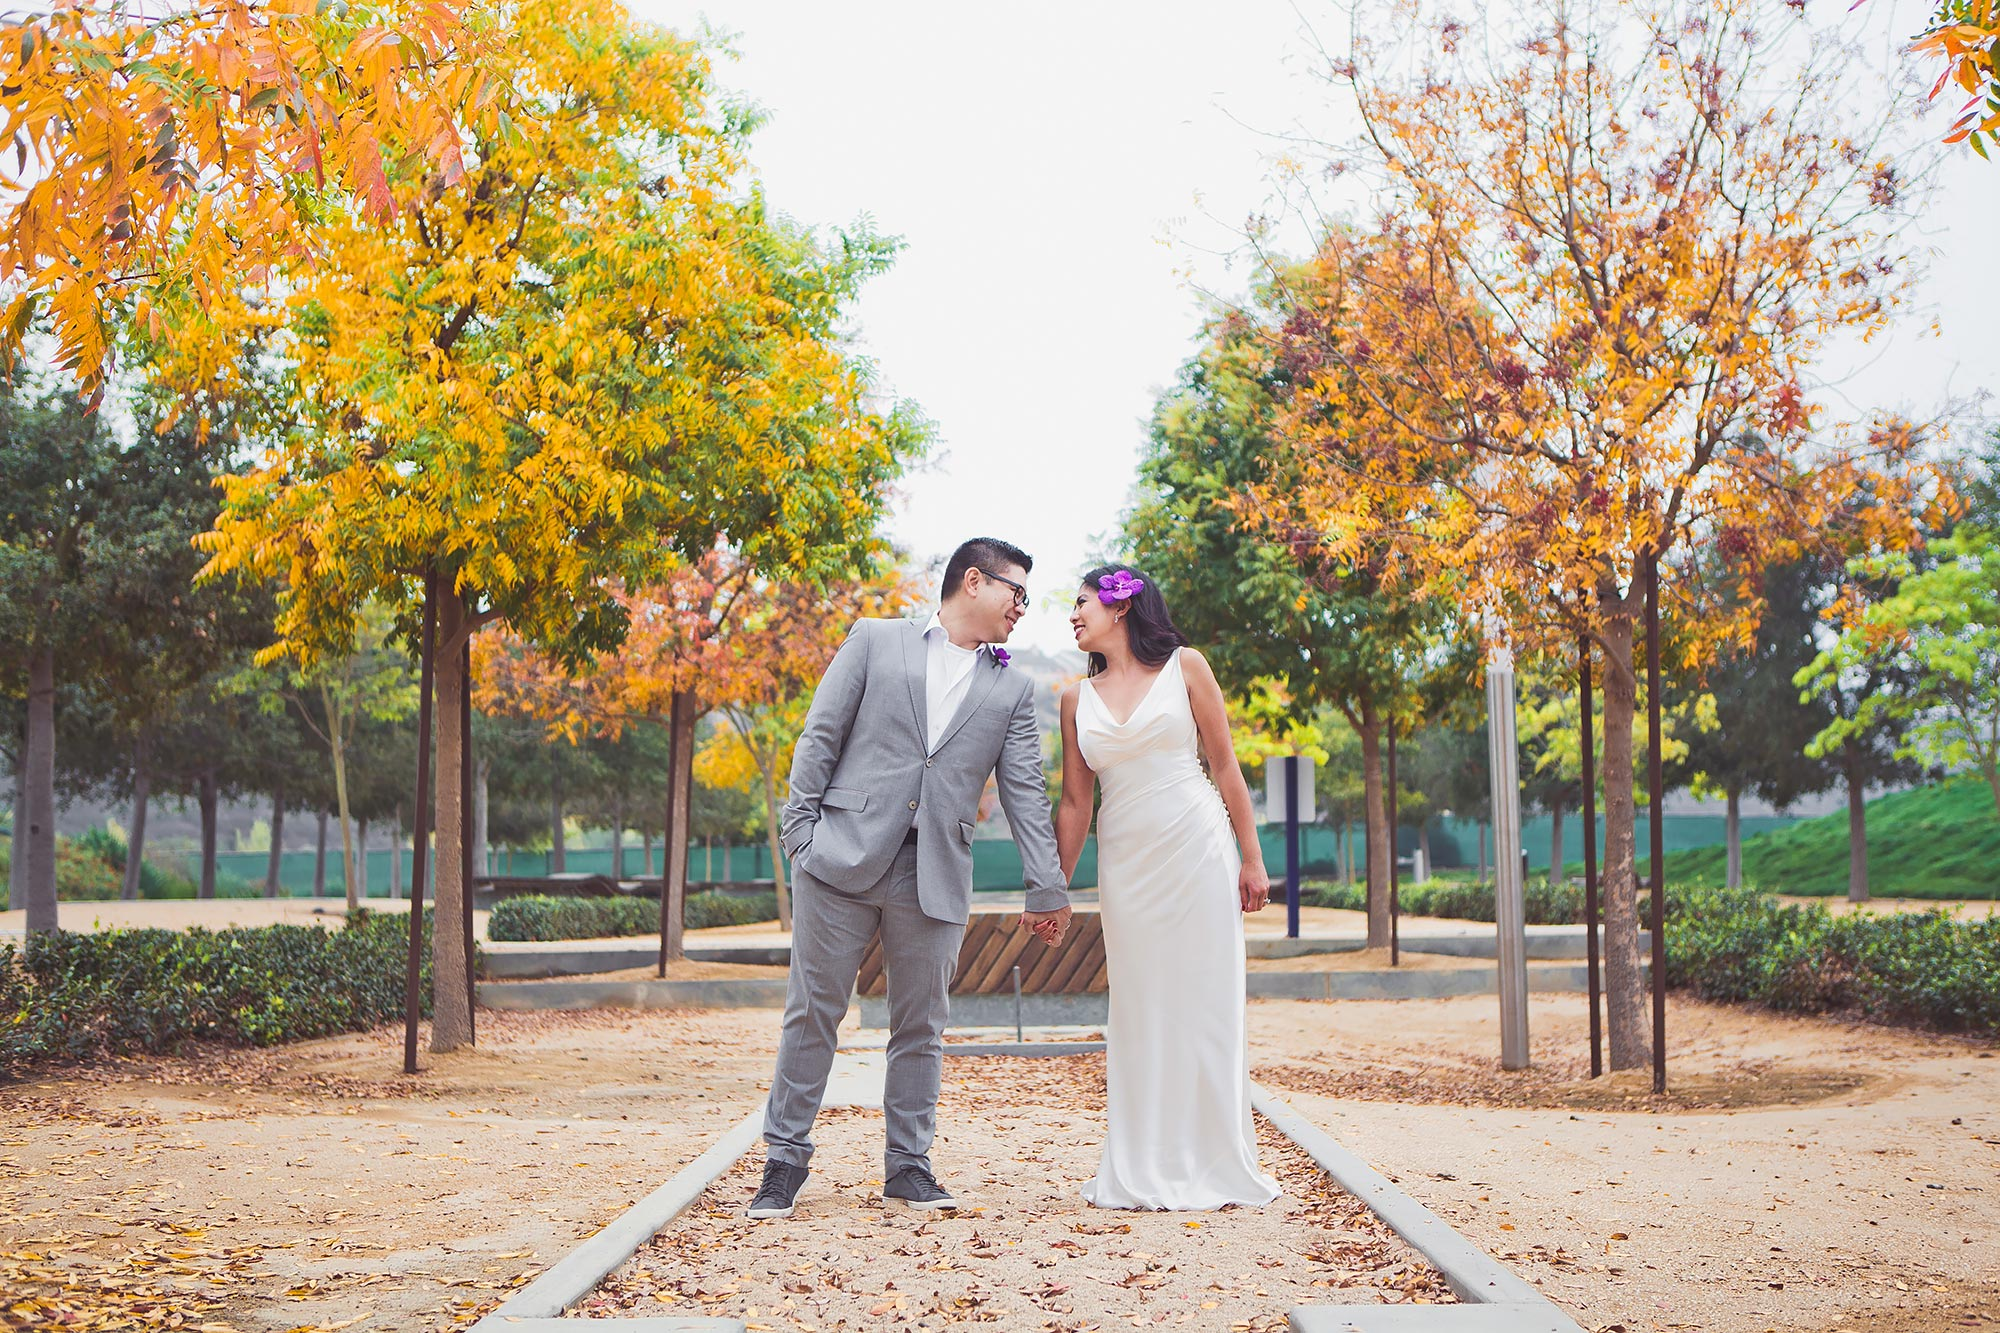 Boston Fall Wedding Photographer | Stephen Grant Photography